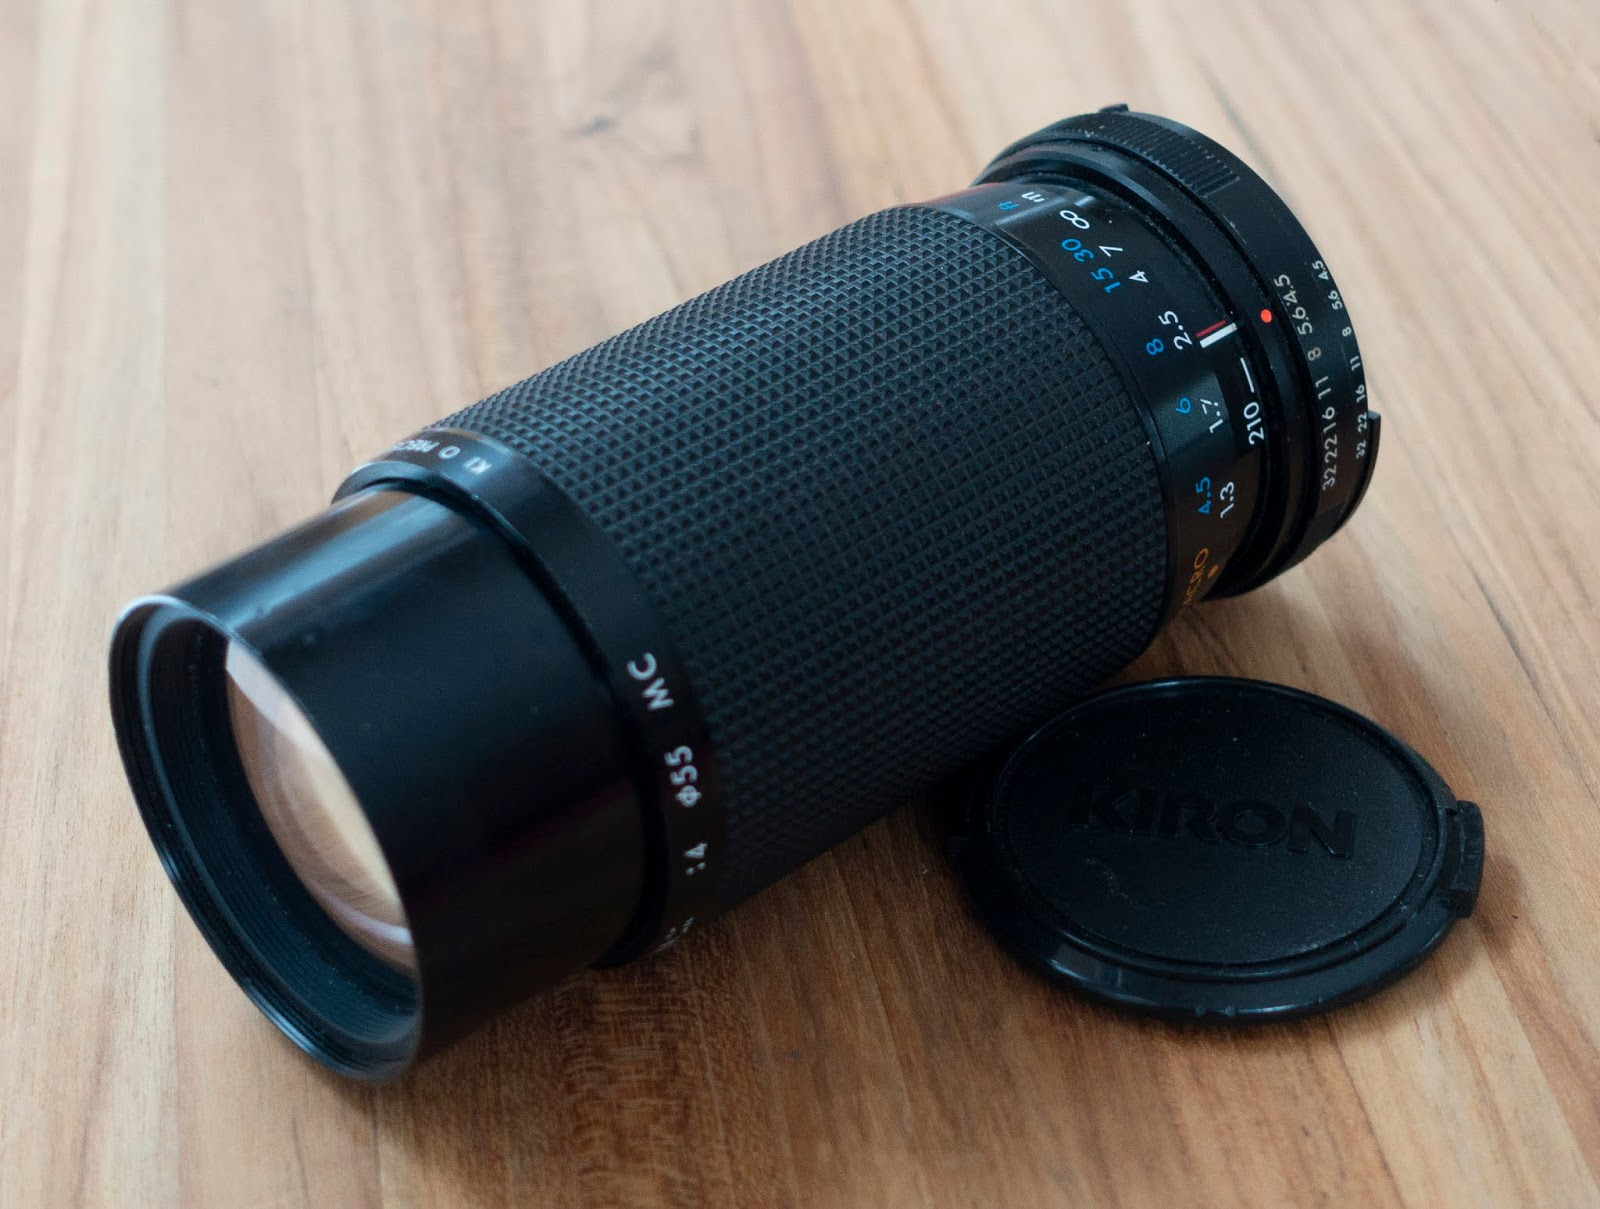 Playing With Lenses: The bad side of an OM (Original Manufacturer